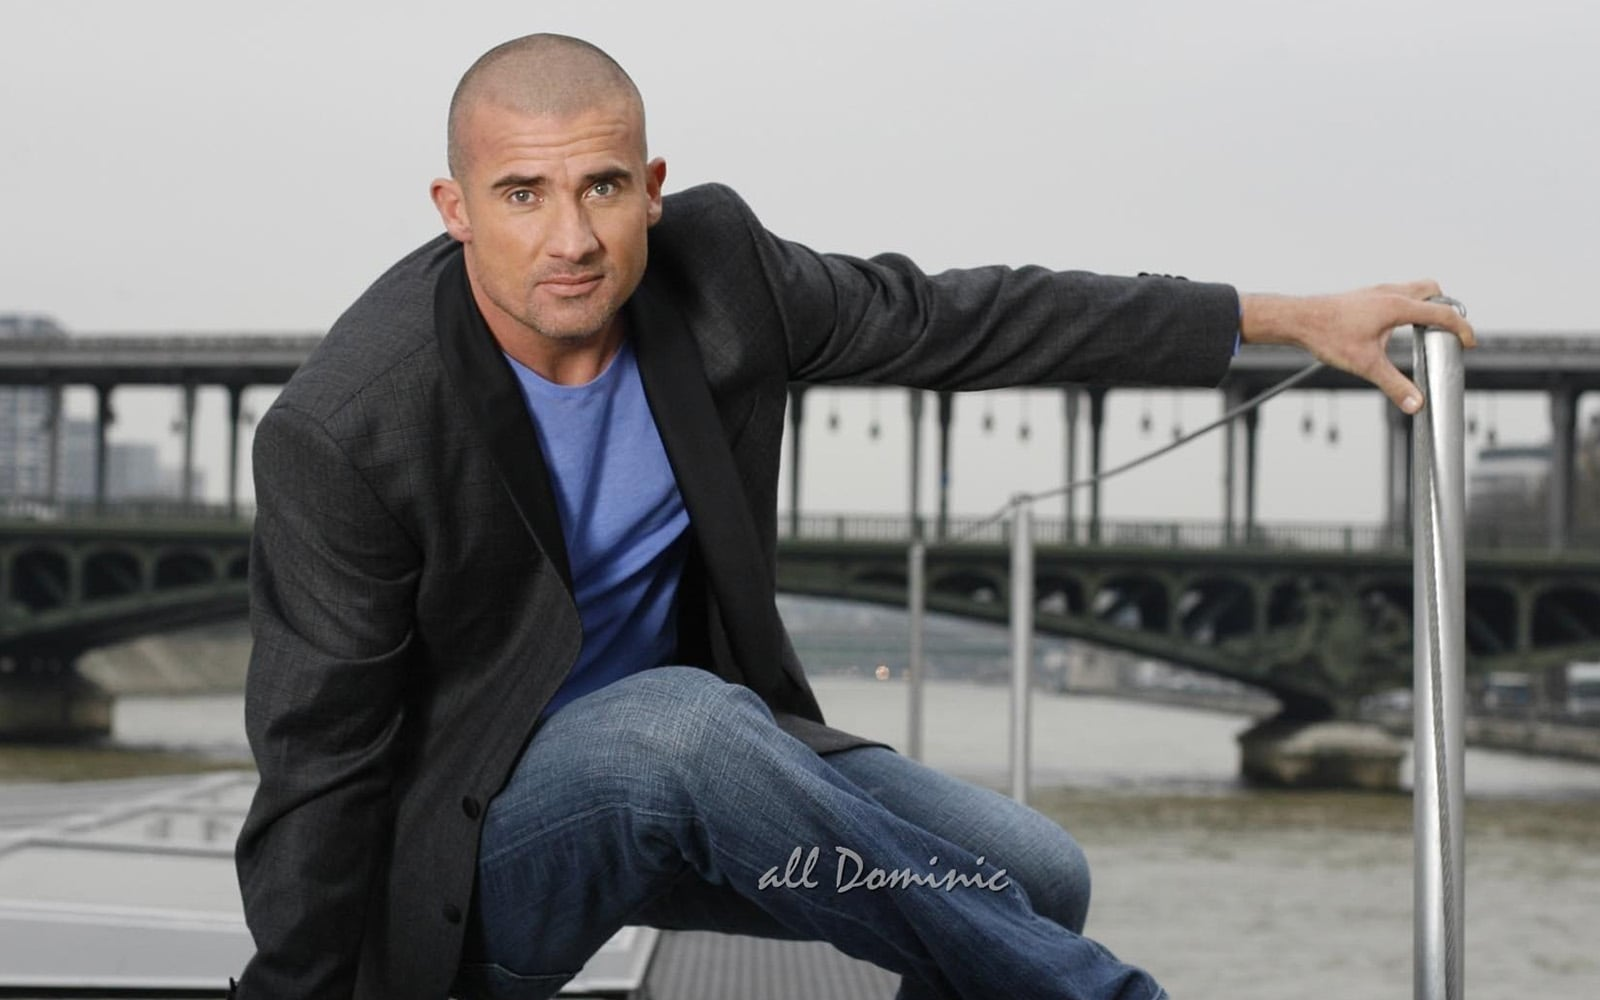 Prison Break Hd Wallpapers Download 20 Dominic Purcell Wallpapers Hd Free Download